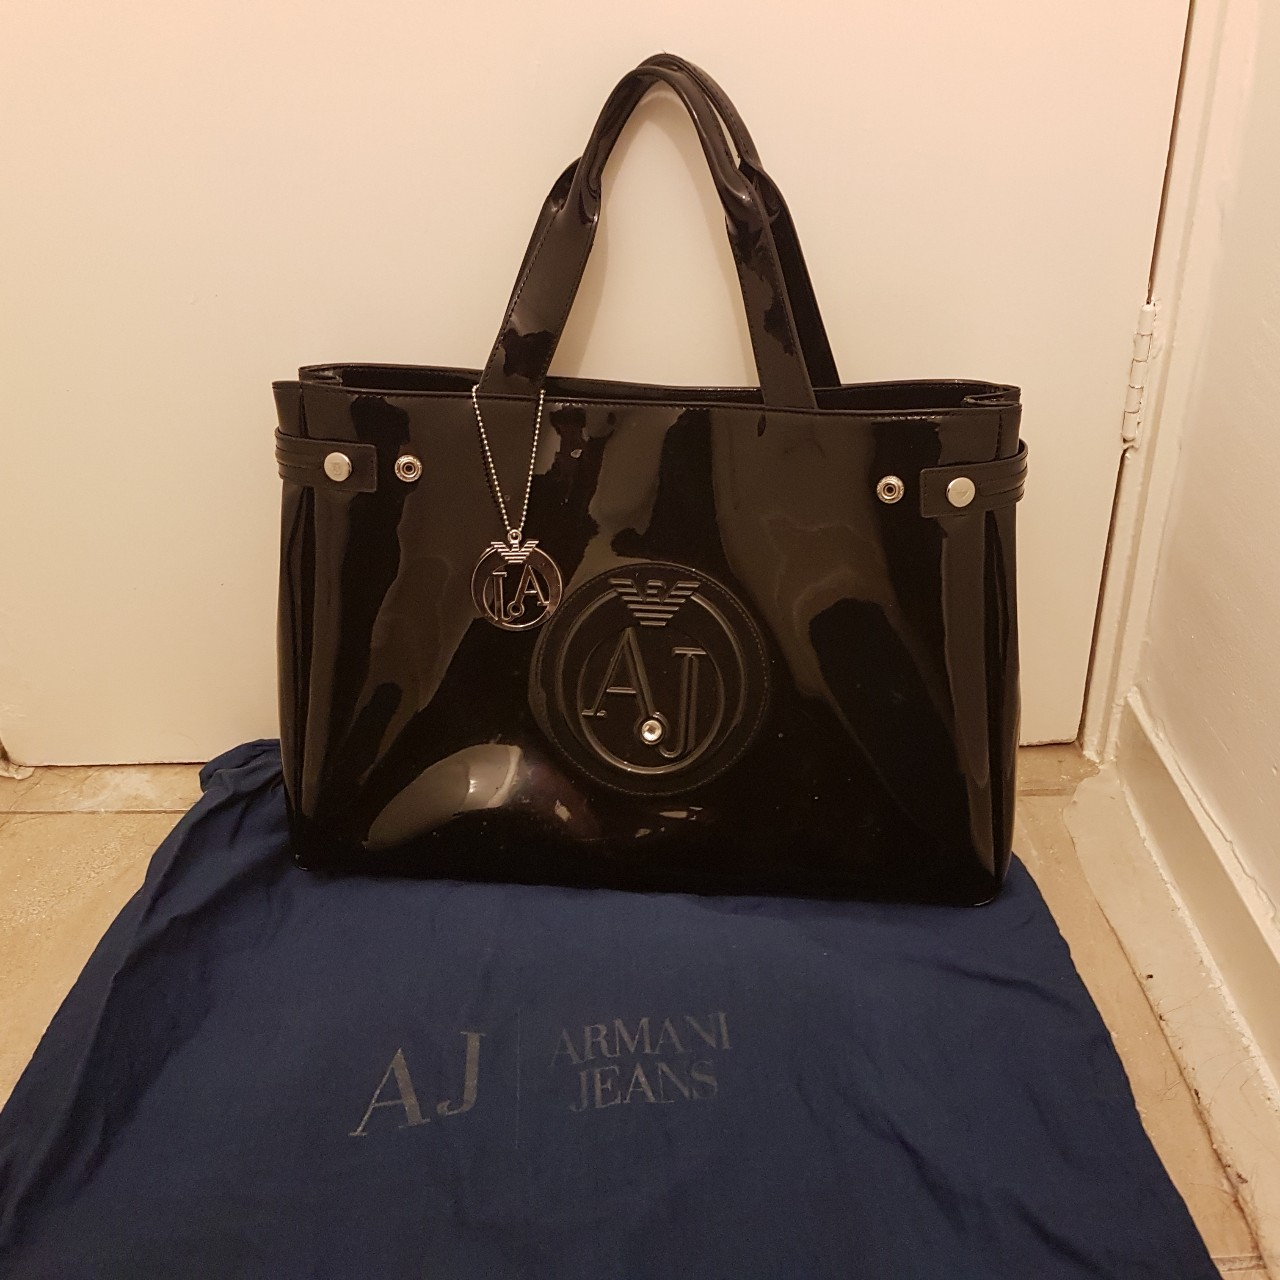 a986be2e5c Hardly used Emporio Armani women's shoulder bag for... - Depop